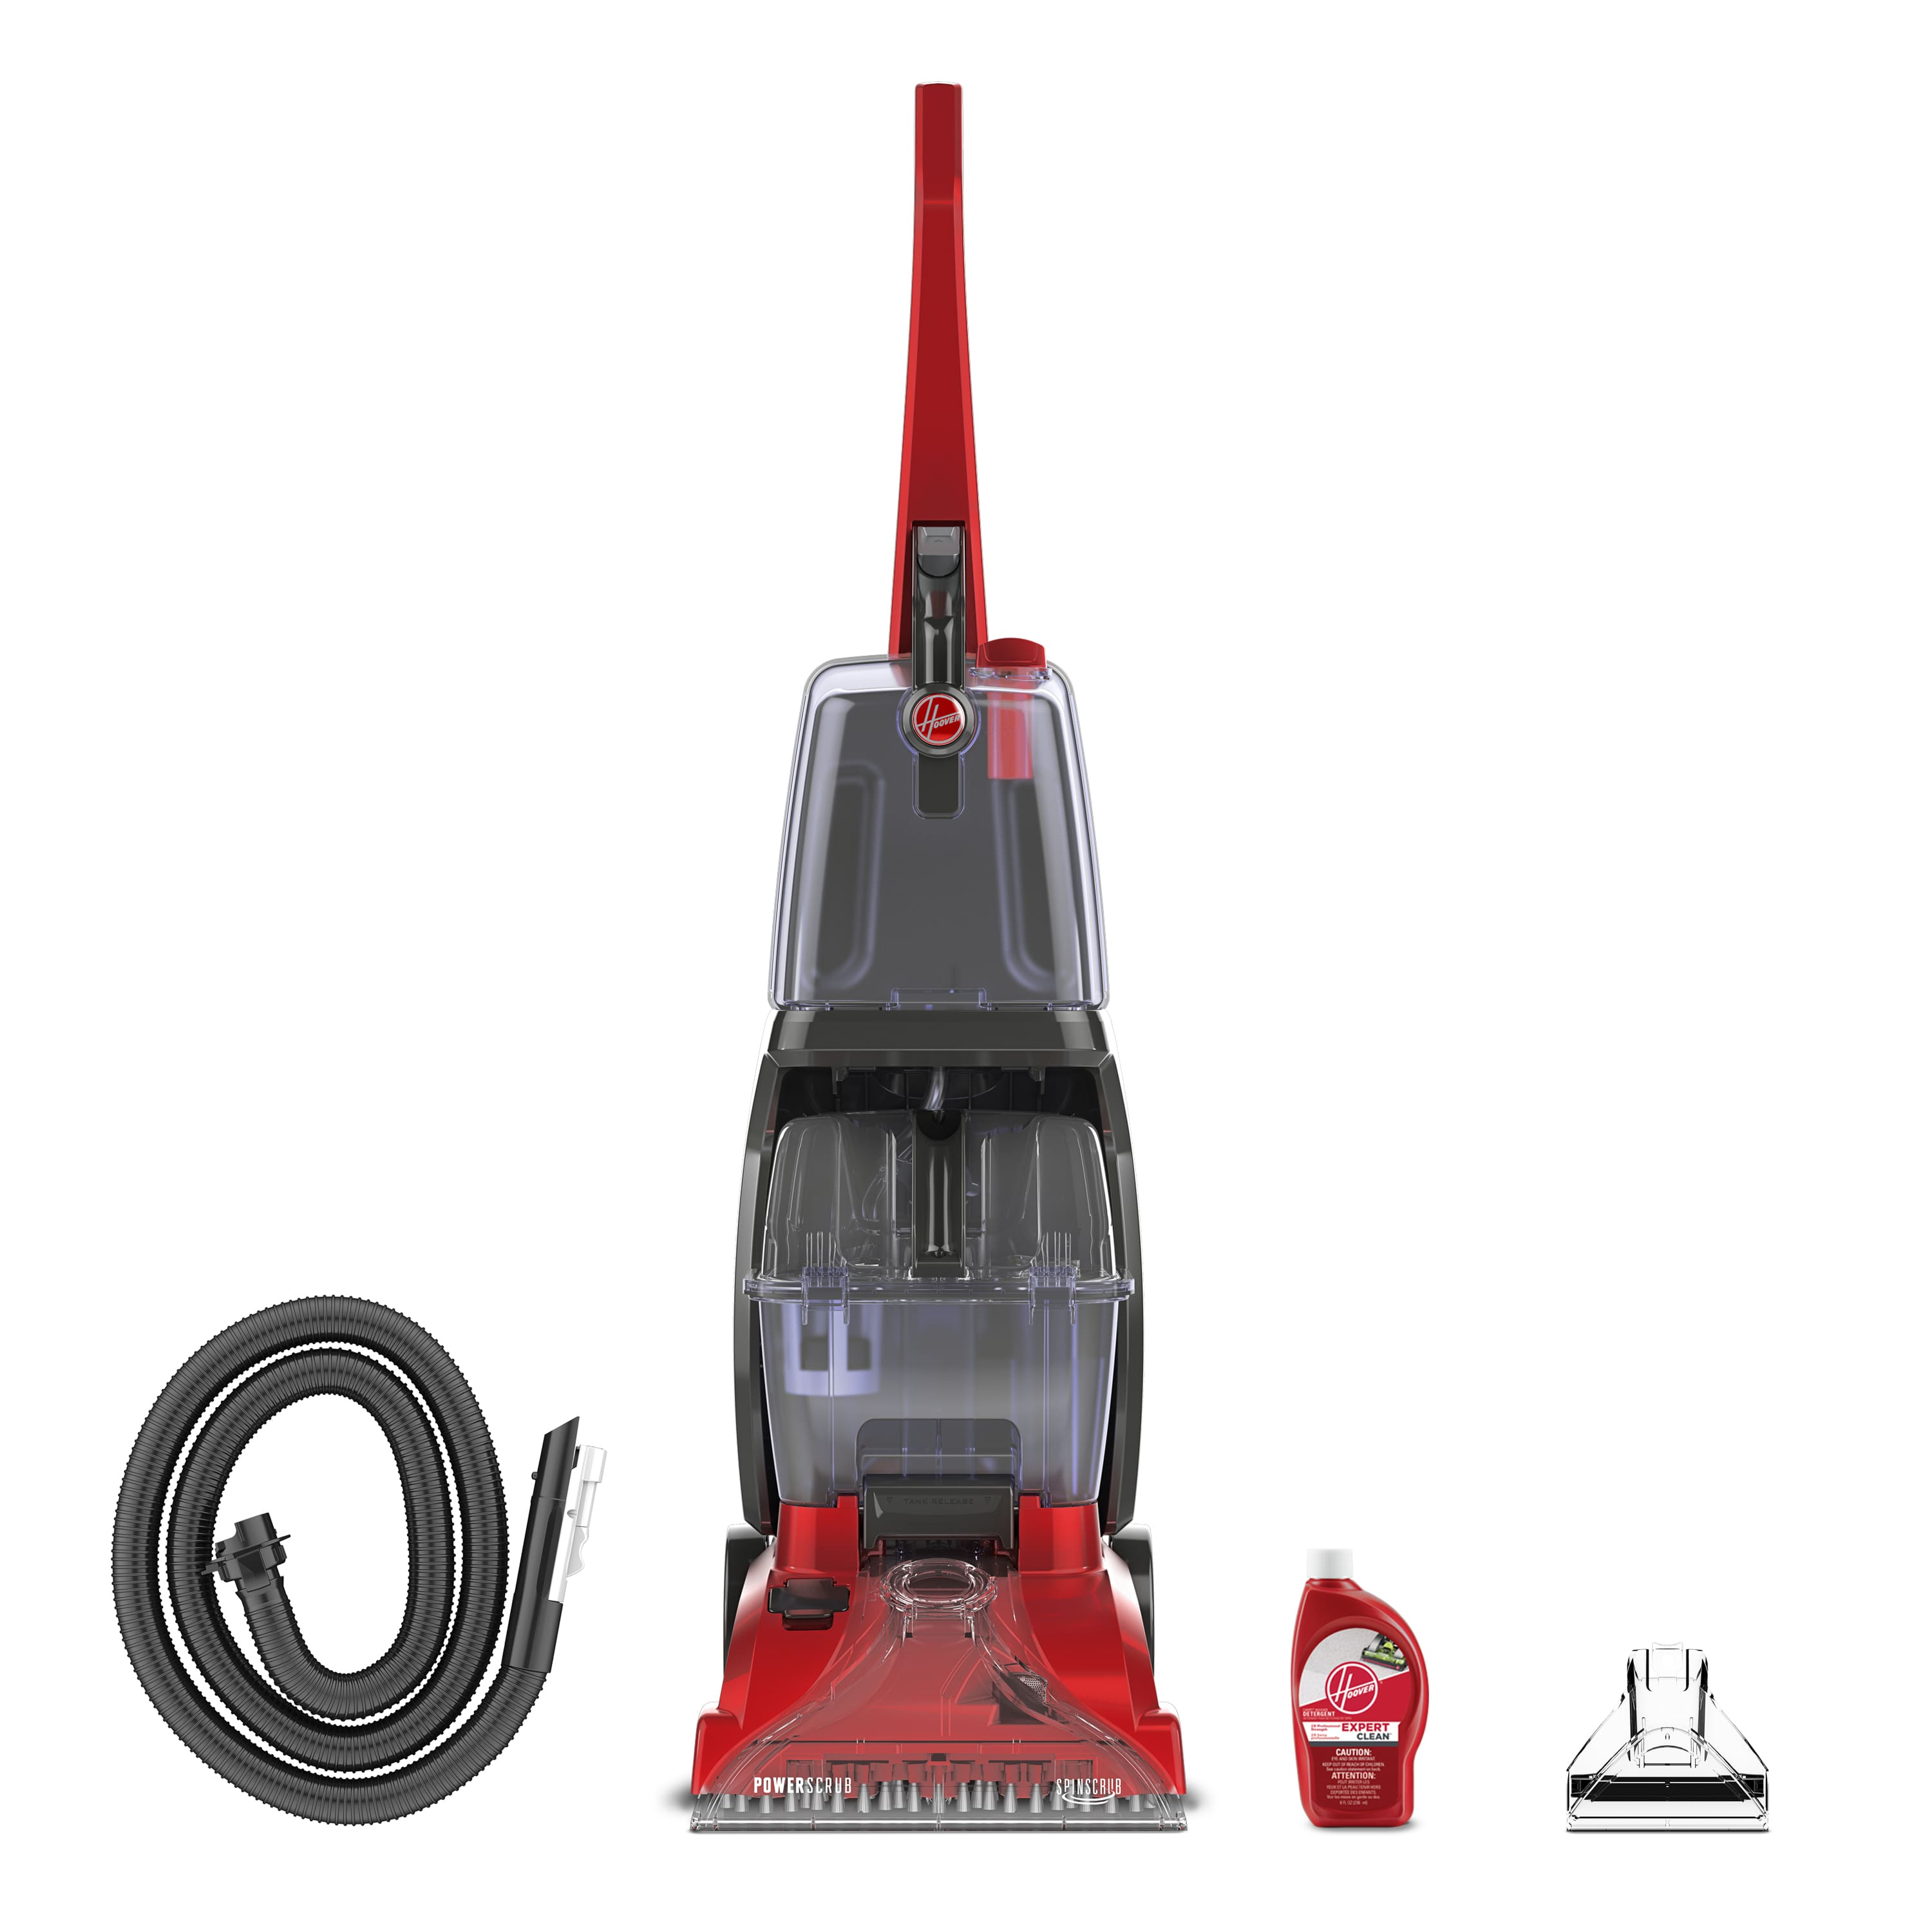 Various Carpet Cleaners on Sale in store Walmart - Extreme YMMV - Hoover, Bissell, Rug Doctor, Starting at $30